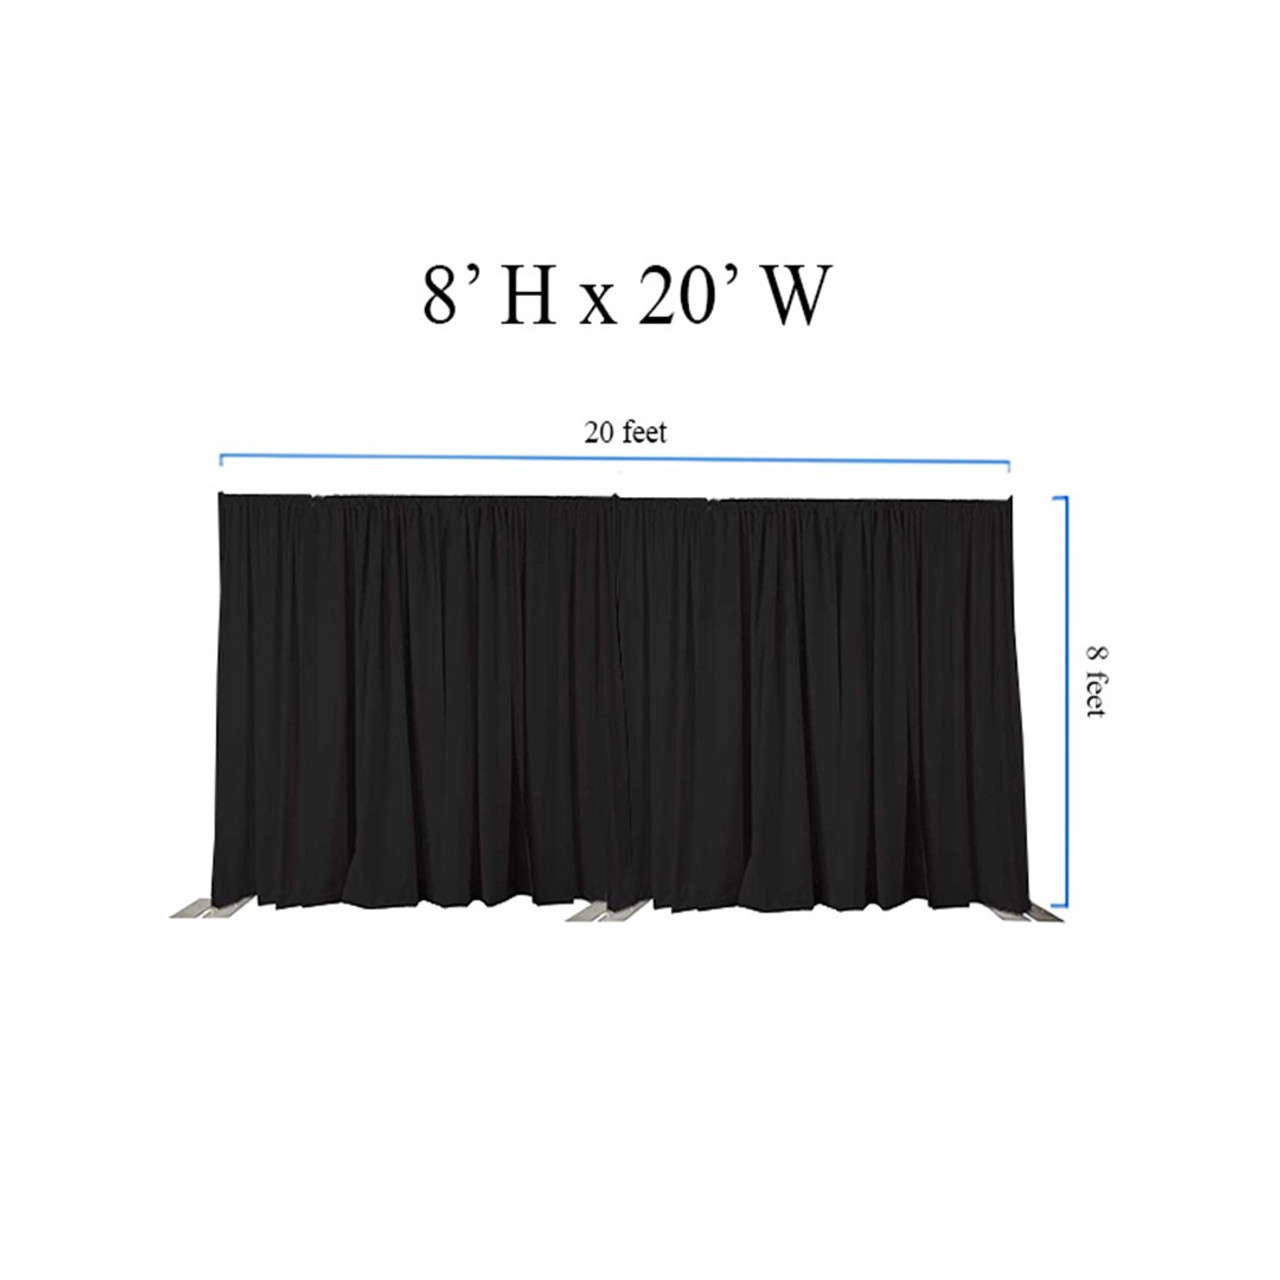 8' High x 20' Wide Pipe and Drape Stage Backdrop Using Two Piece Upright with Black Premier Polyester Drapes